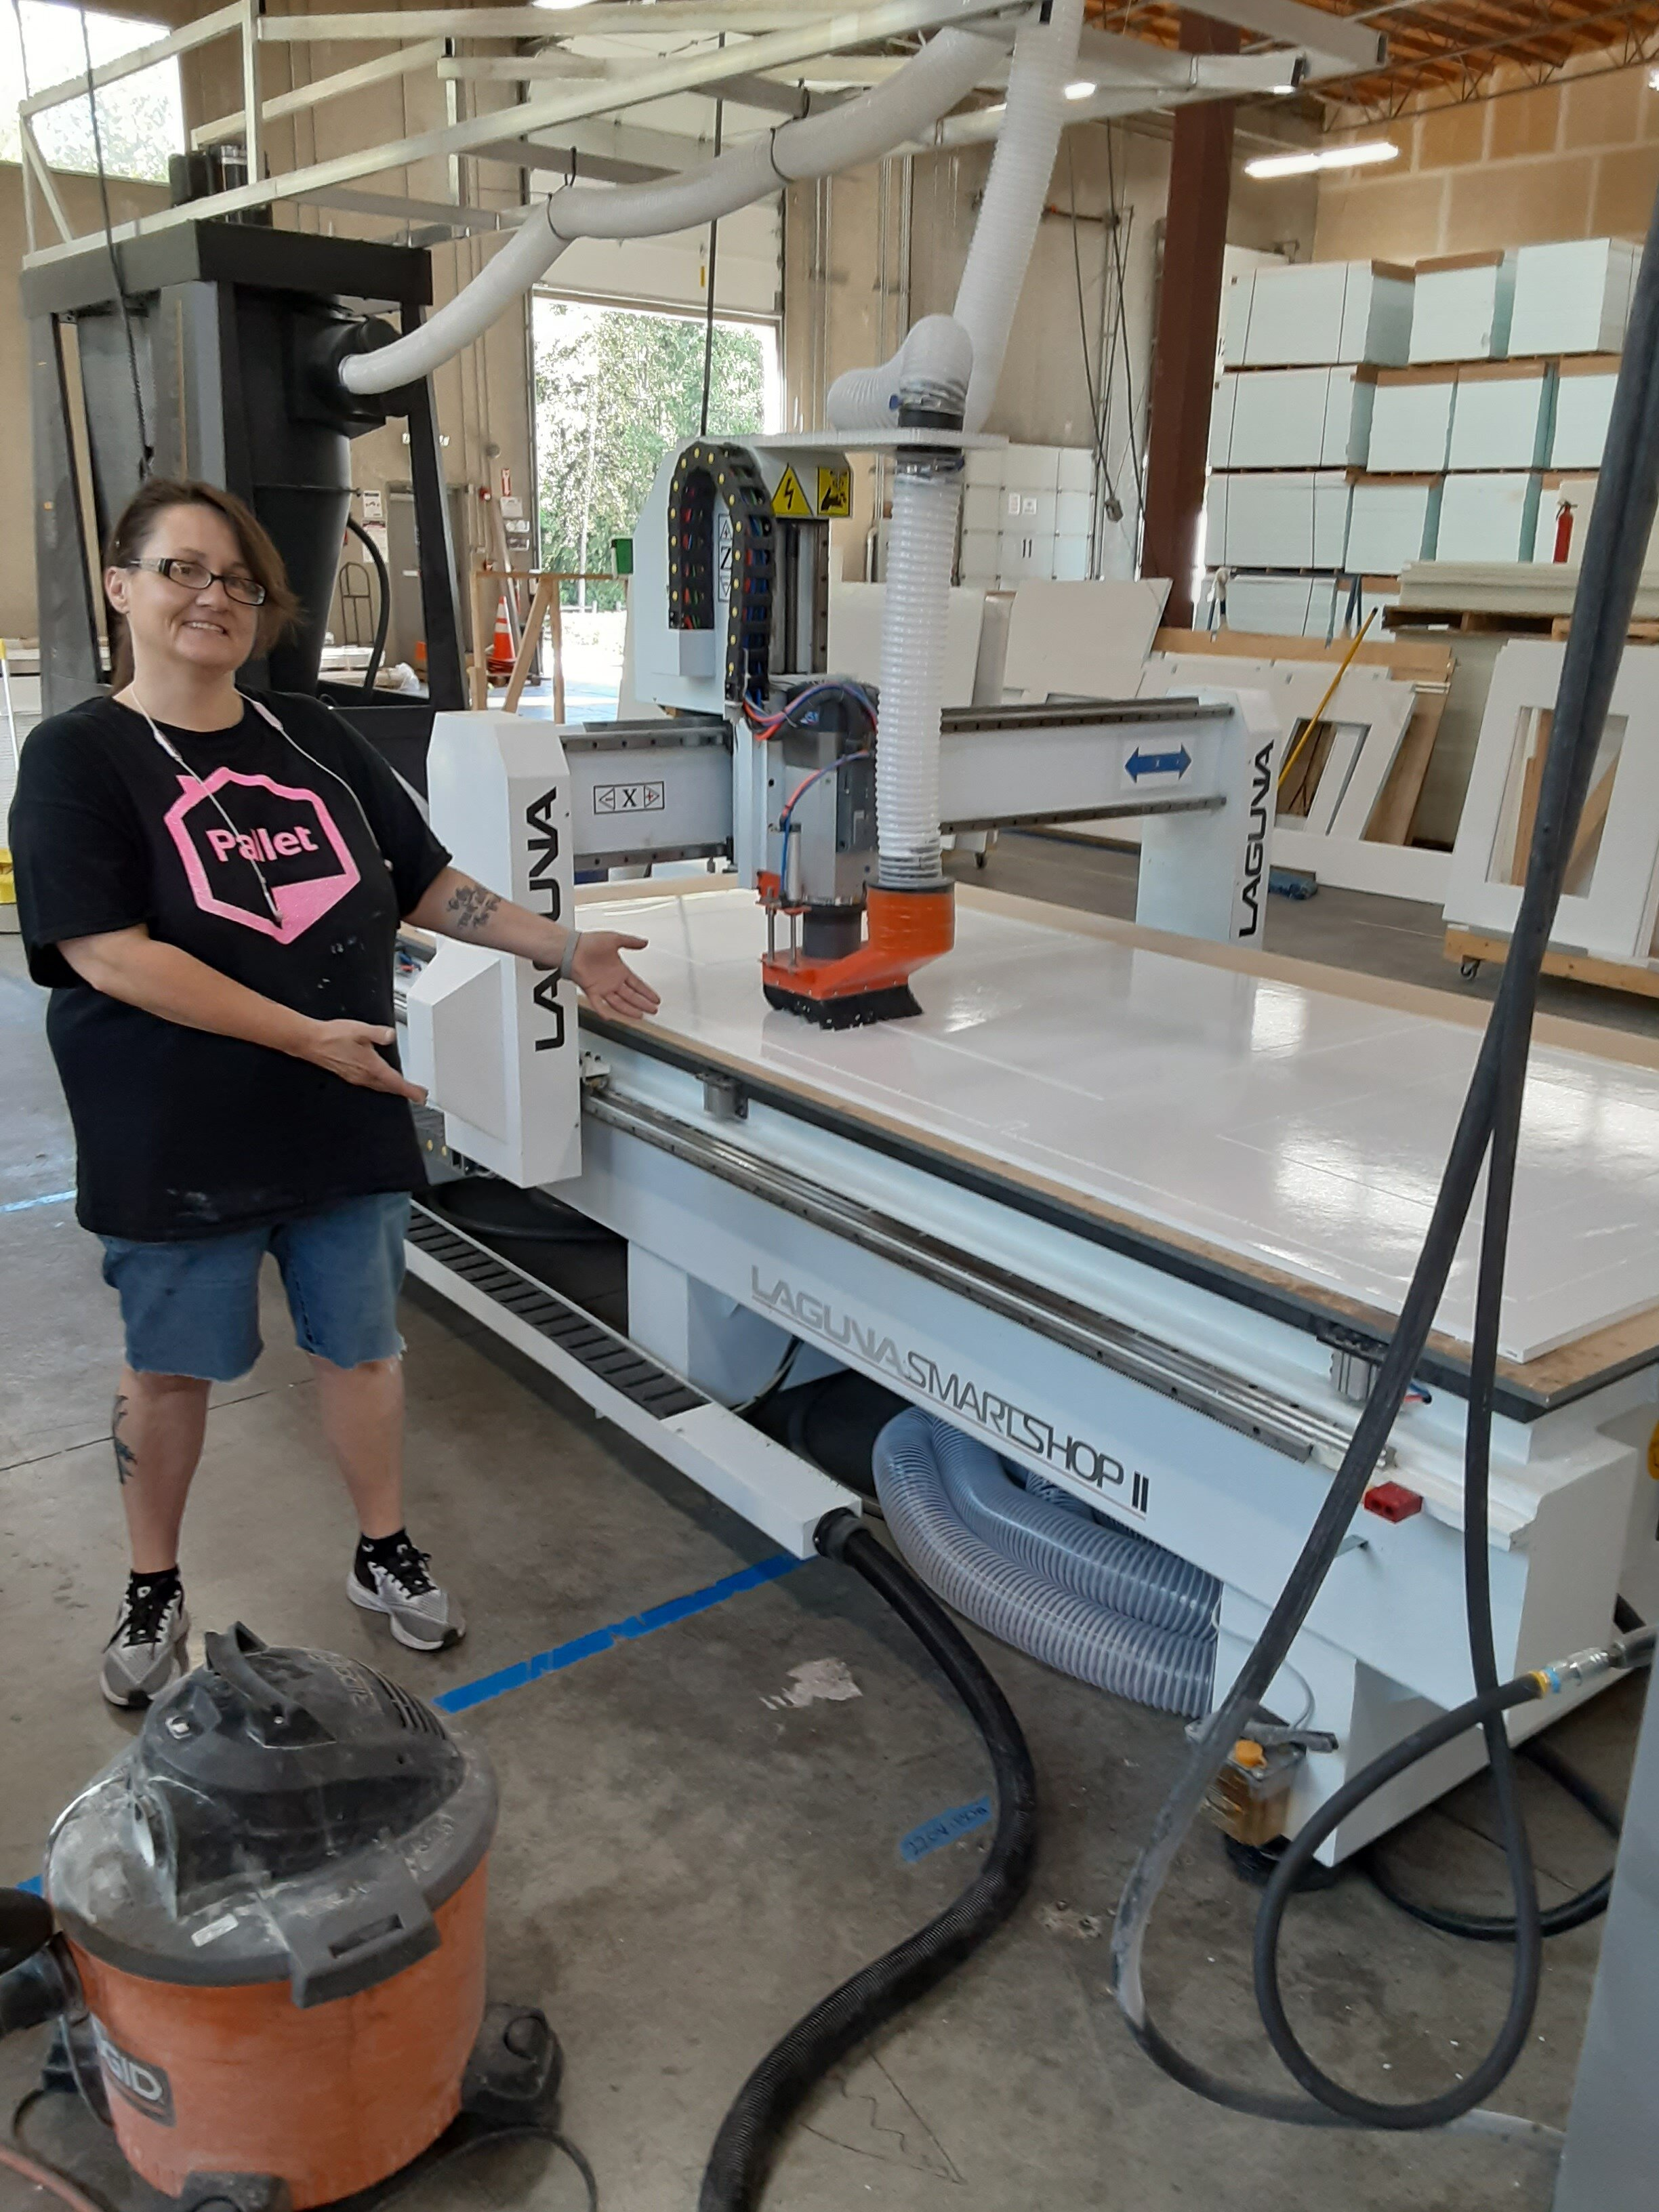 Daniece after learning how to use new manufacturing equipment at Pallet's factory headquarters.